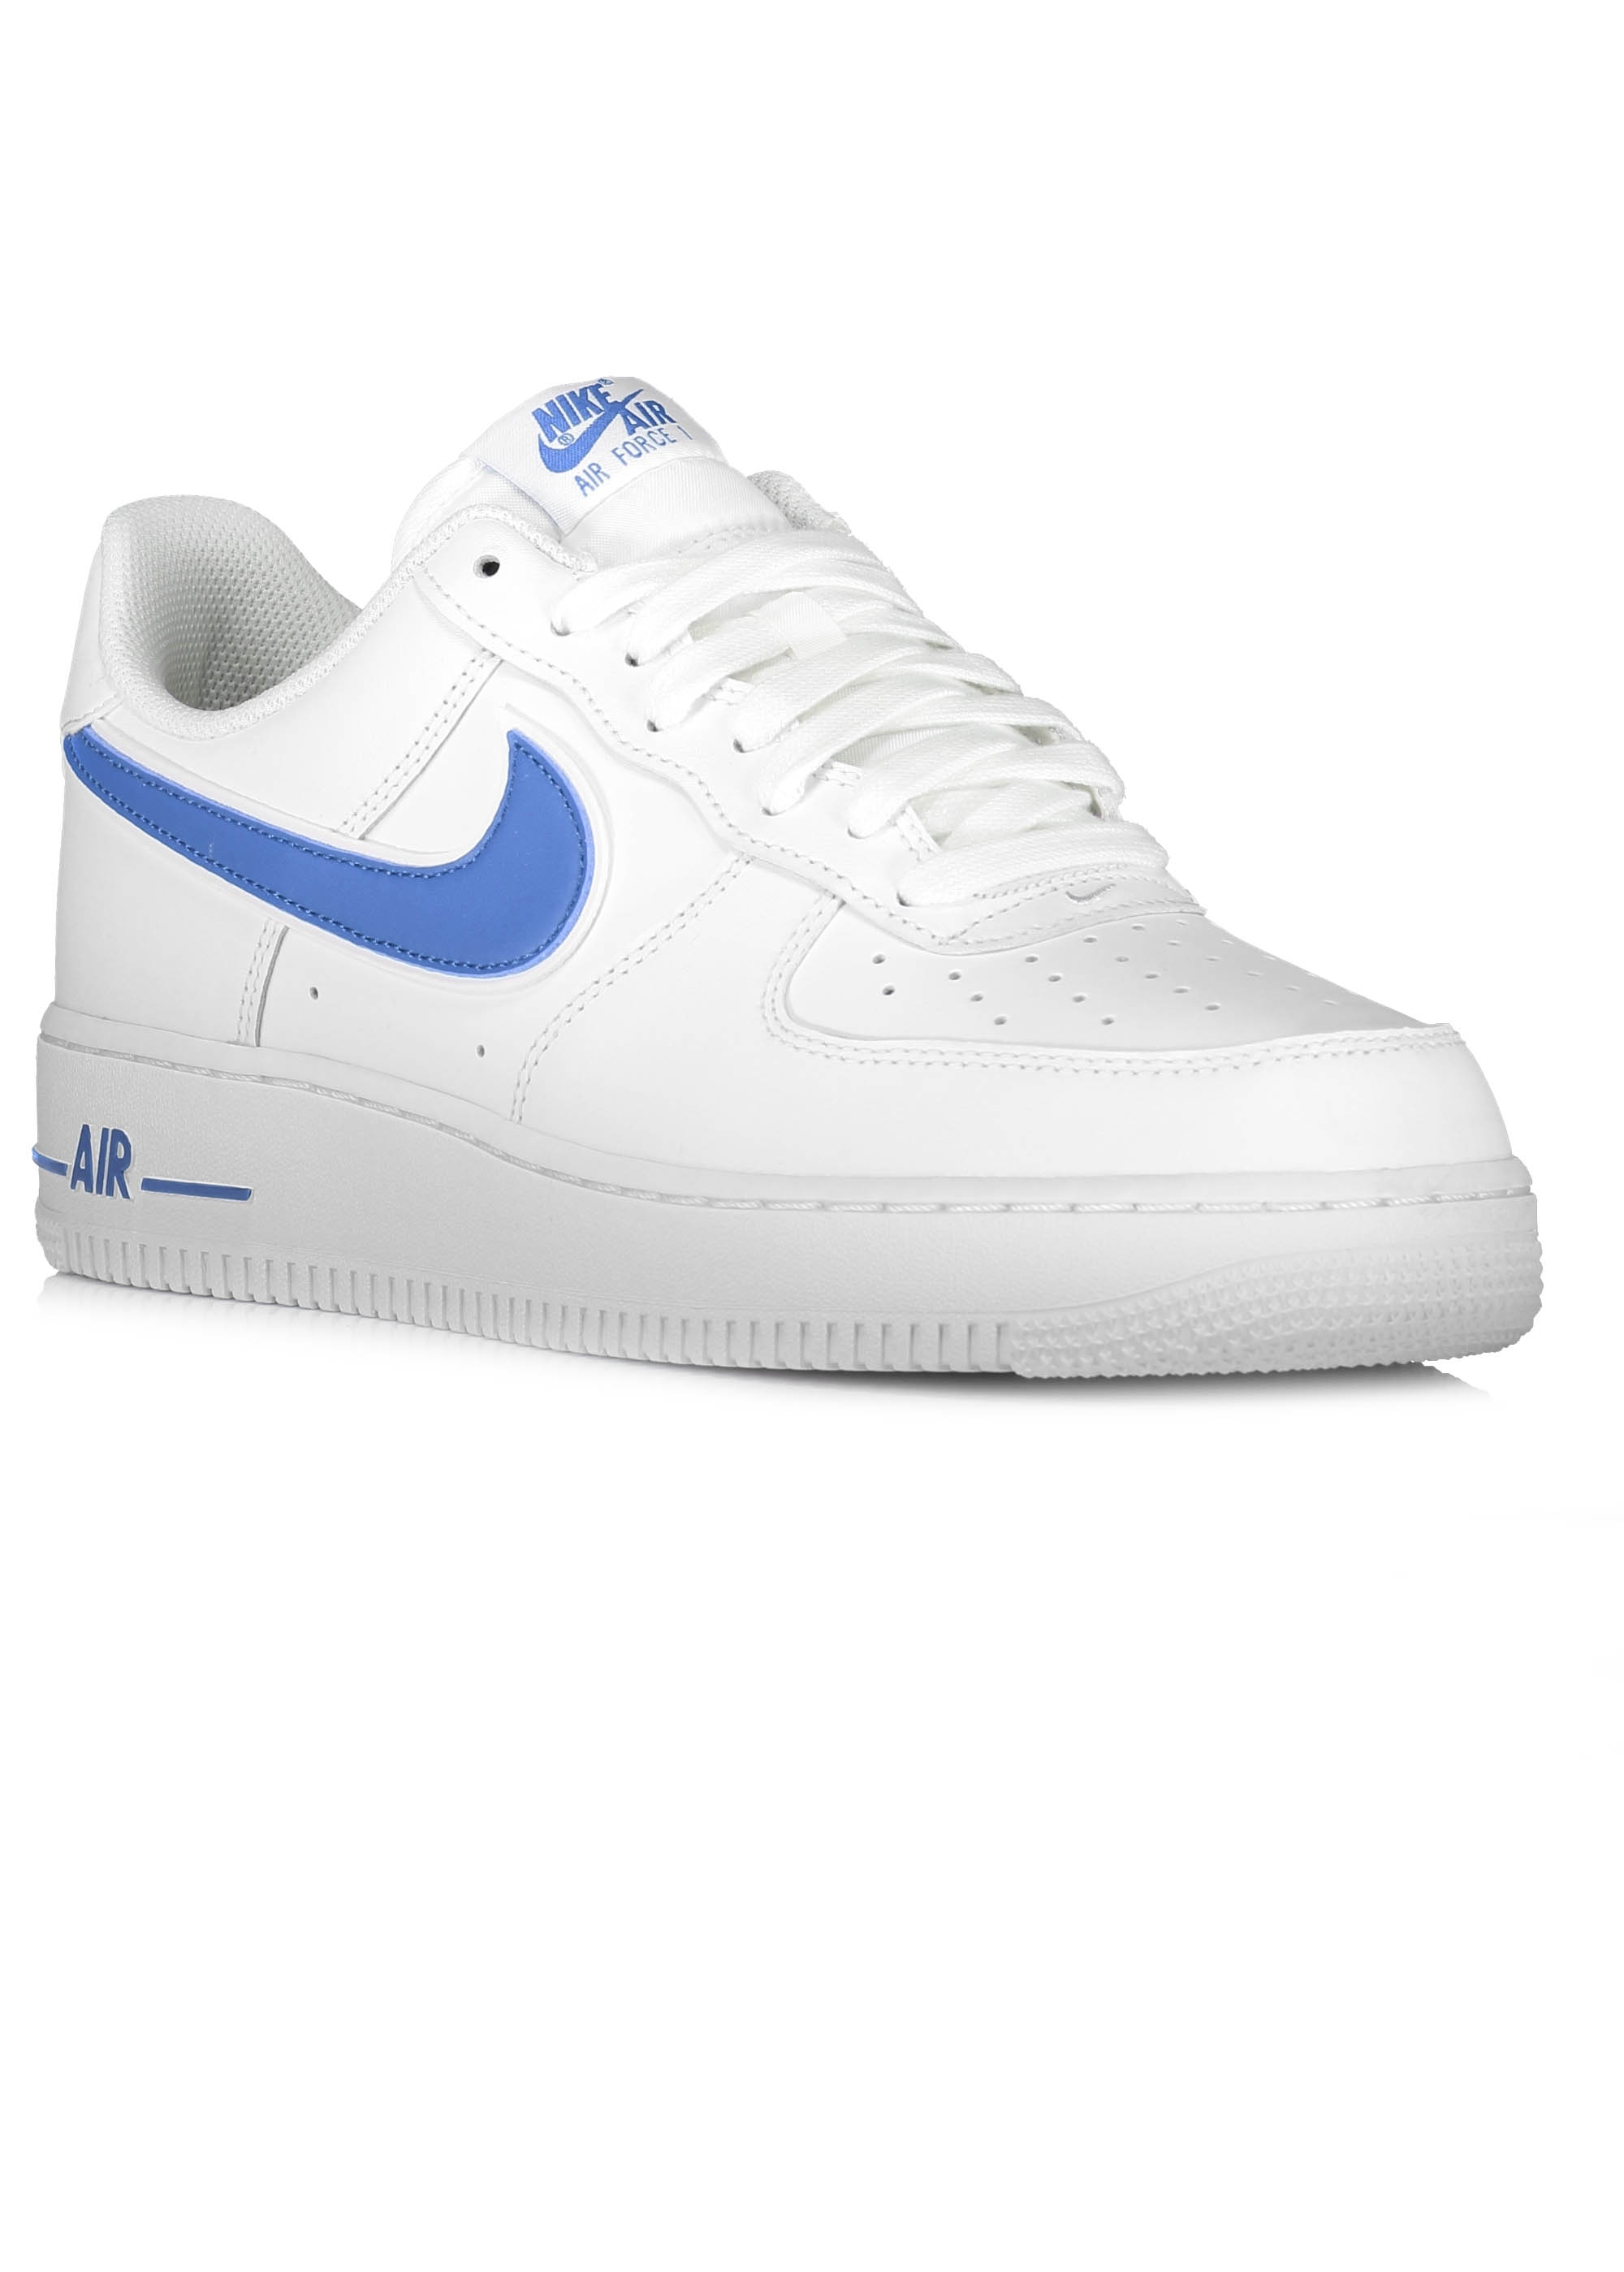 2air force 1 42.5